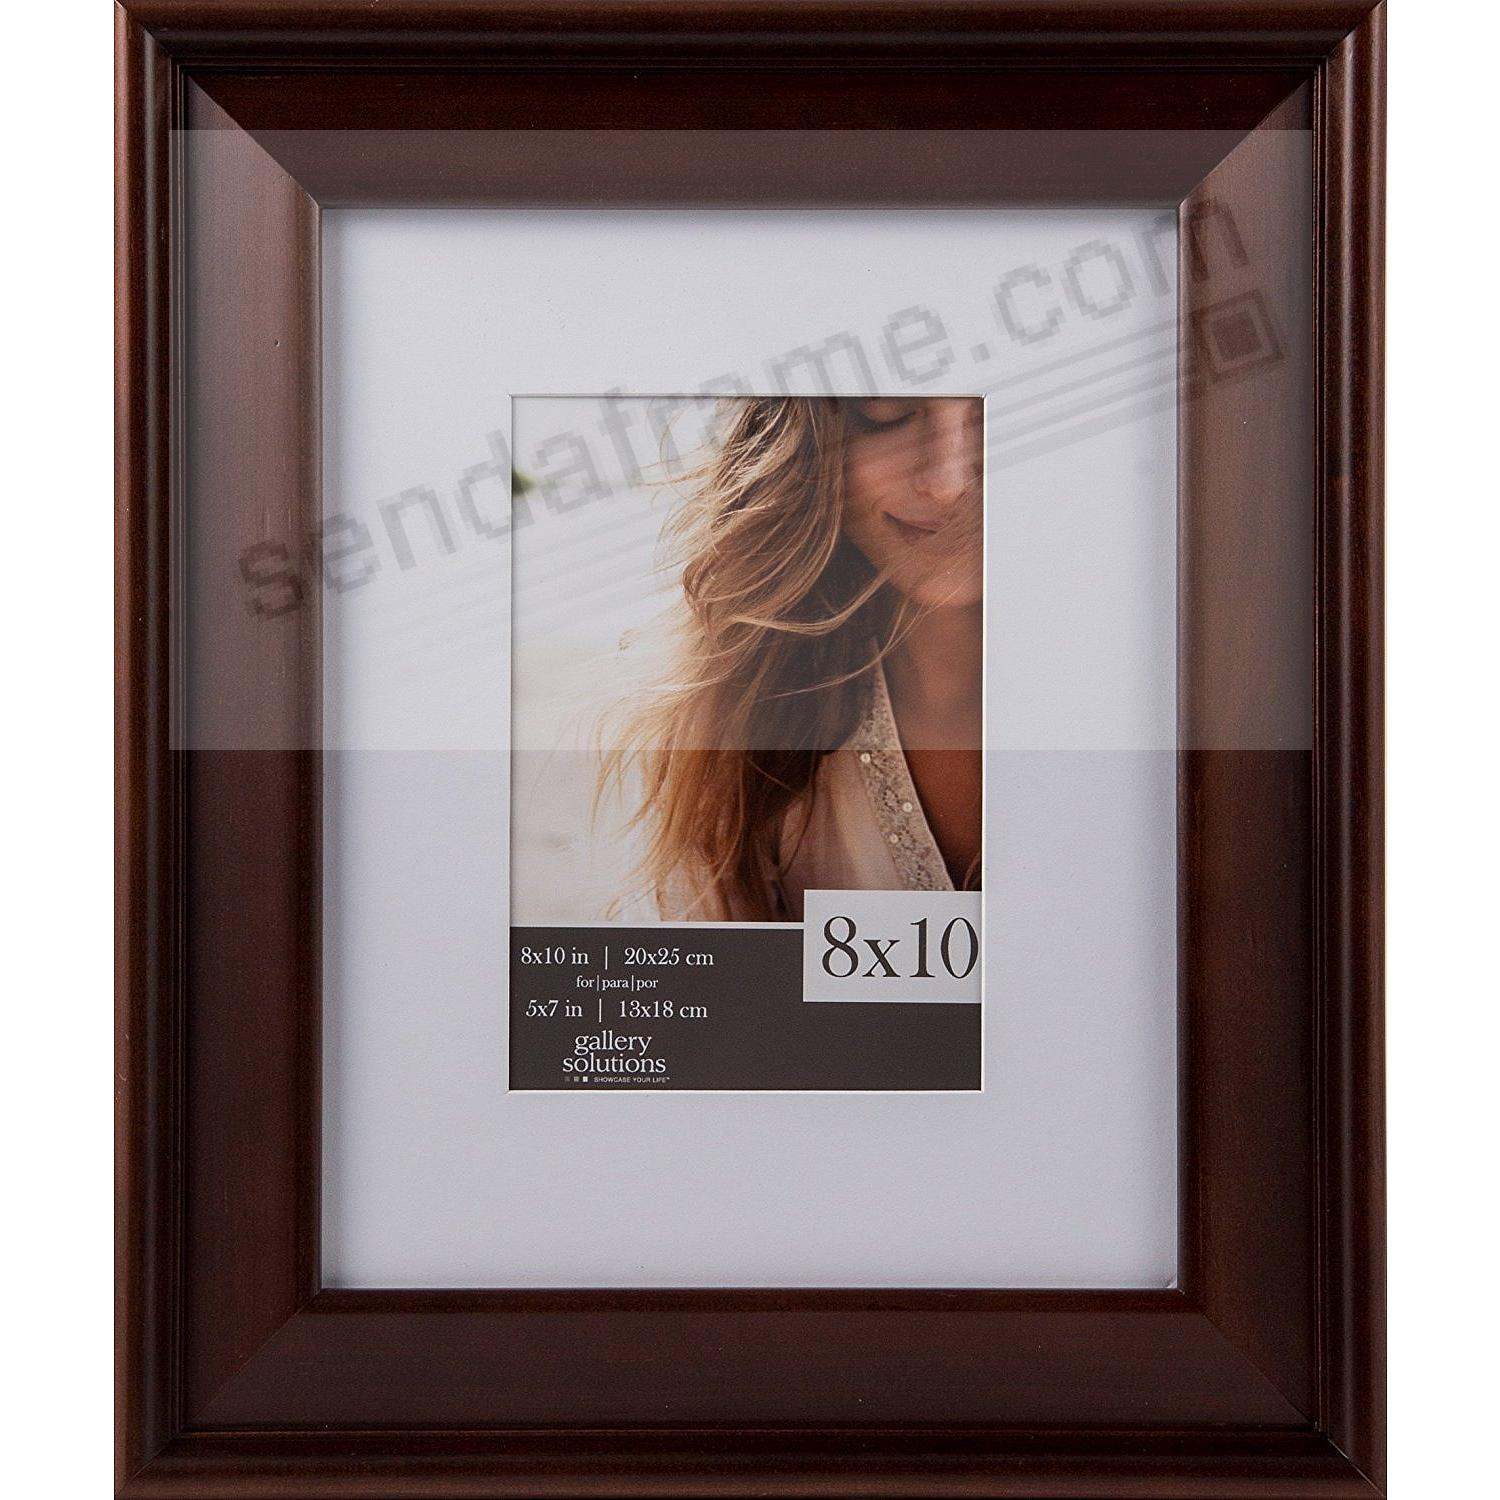 Walnut Wood Wall Frame 8x10 matted to 5x7 by Gallery Solutions™